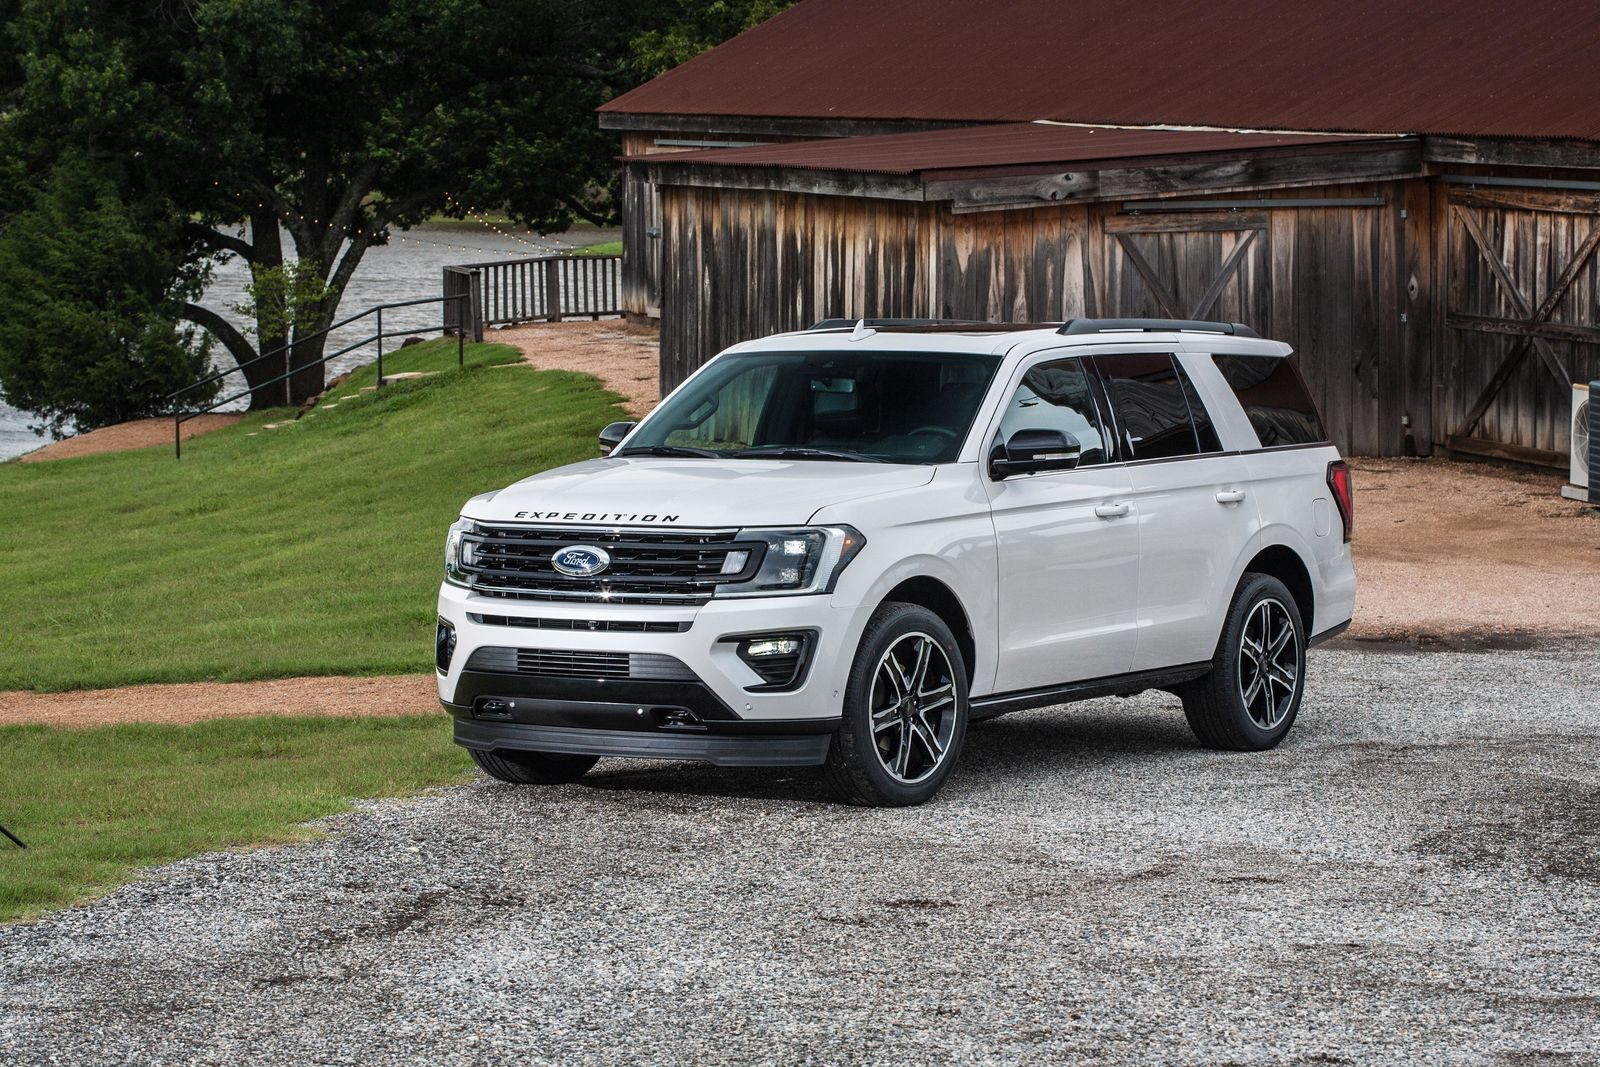 2019 Ford Expedition Stealth Edition{ }(Photo: Ford)